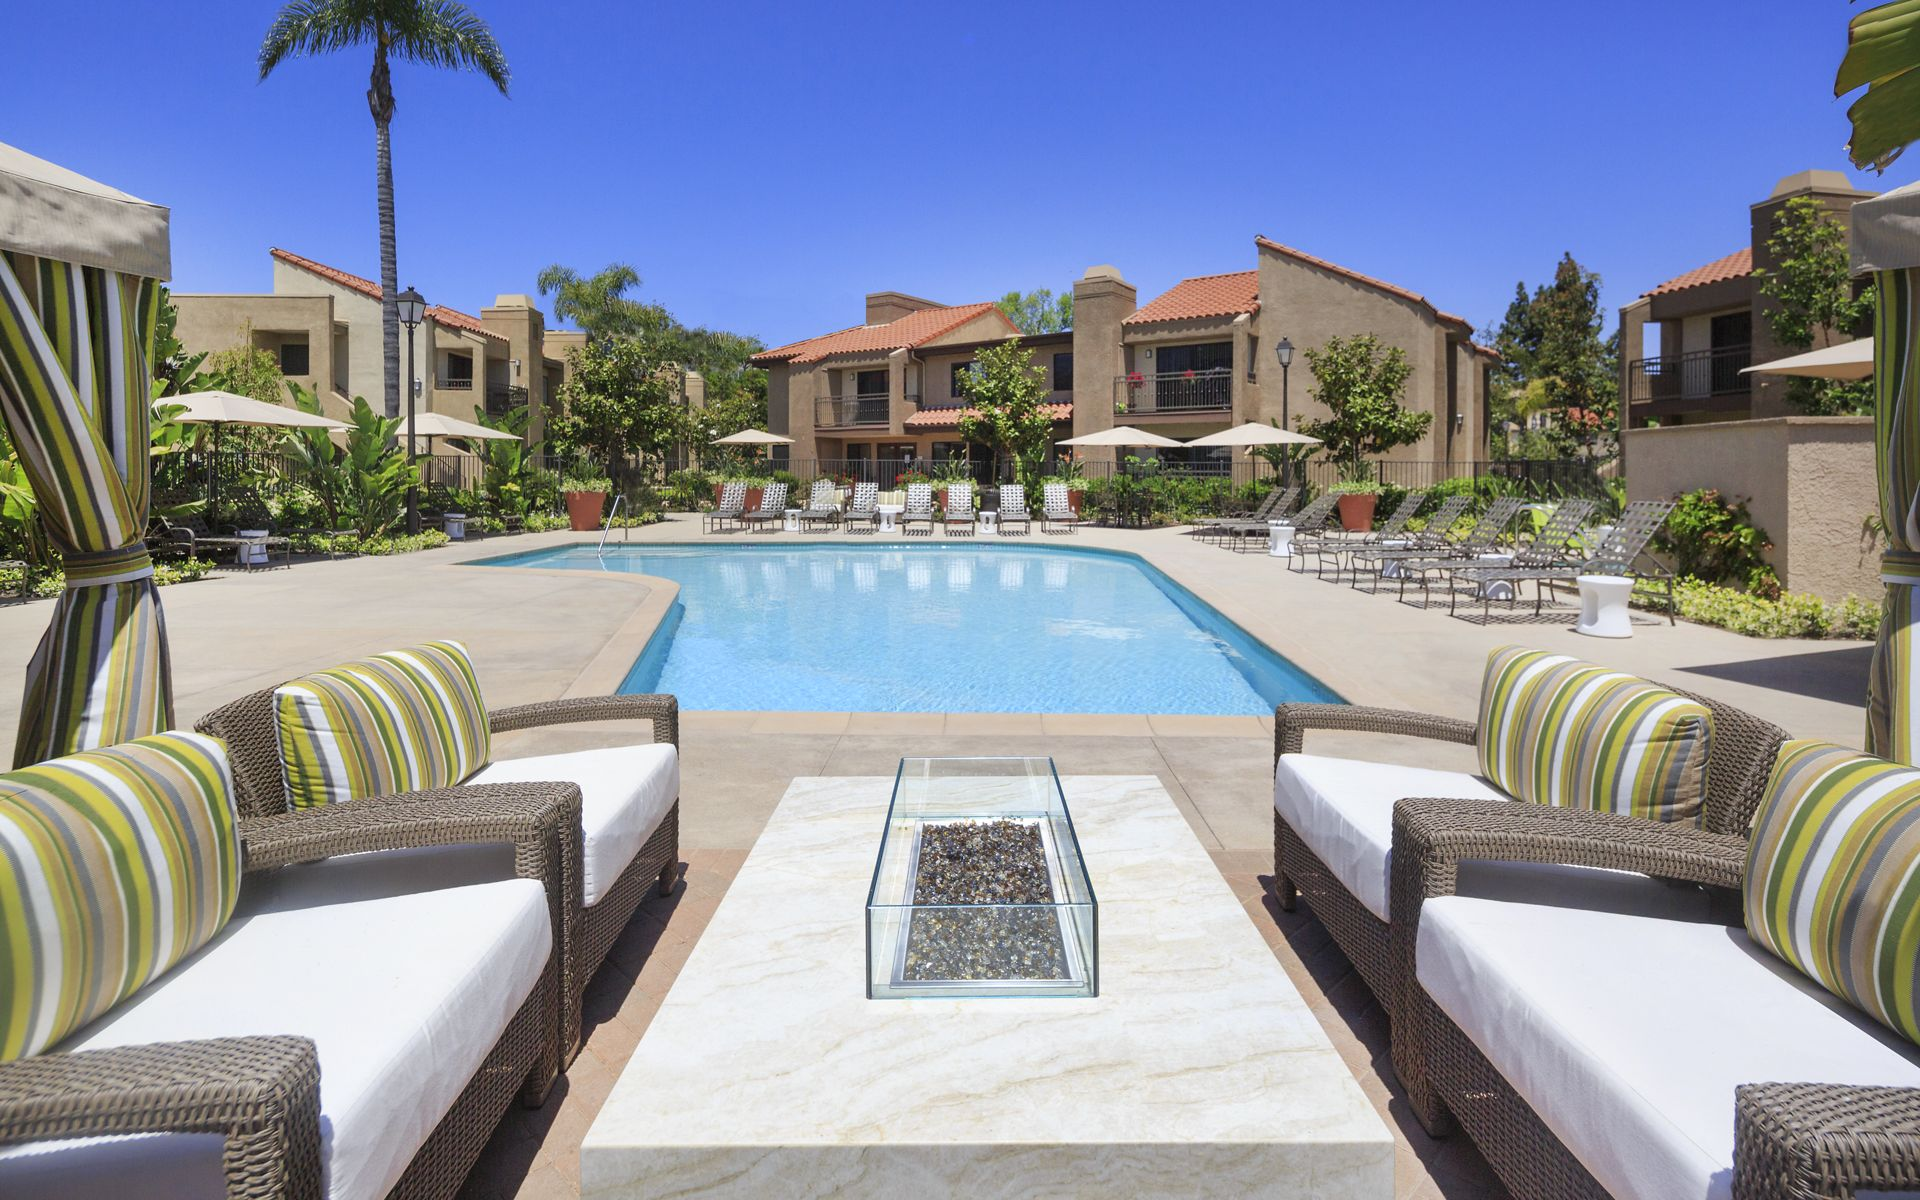 Exterior view of pool at Westwood Apartment Homes in San Diego, CA.